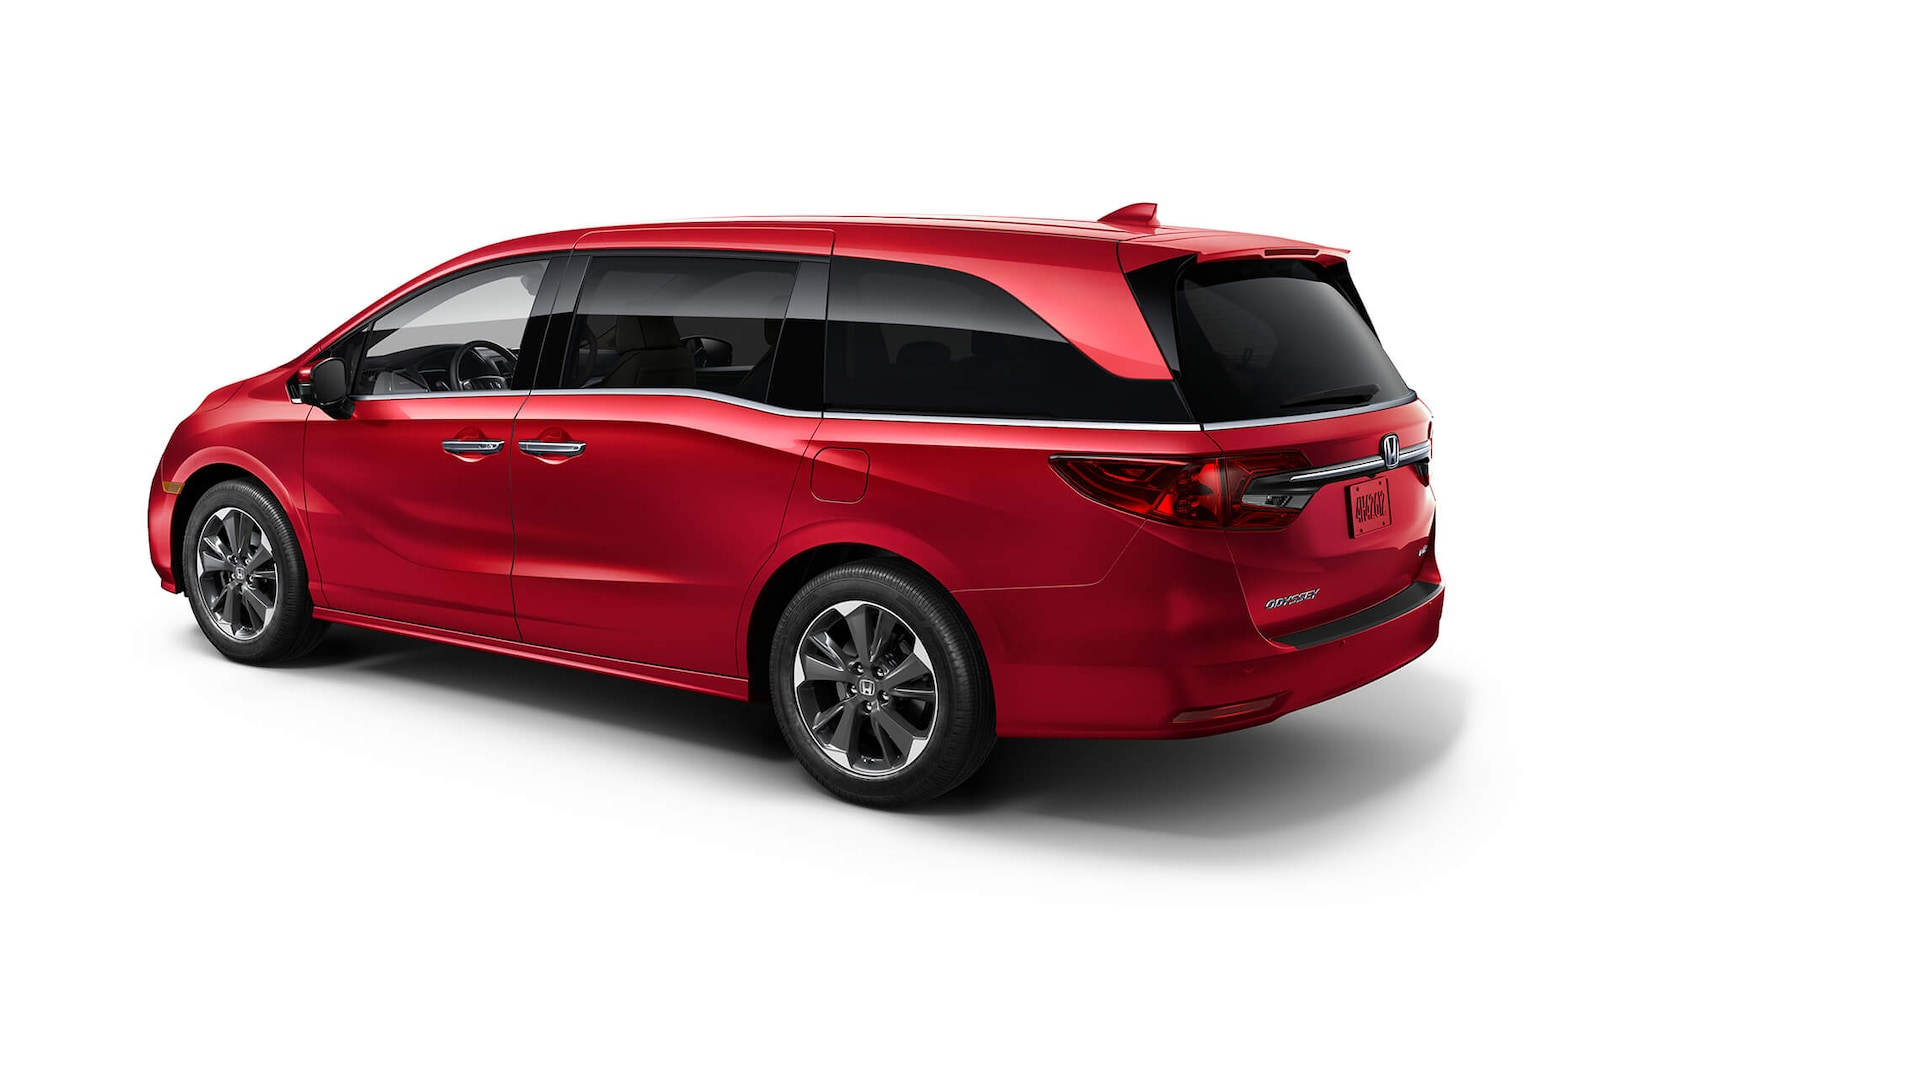 Rear driver-side view of the 2022 Honda Odyssey Elite in Radiant Red Metallic II.